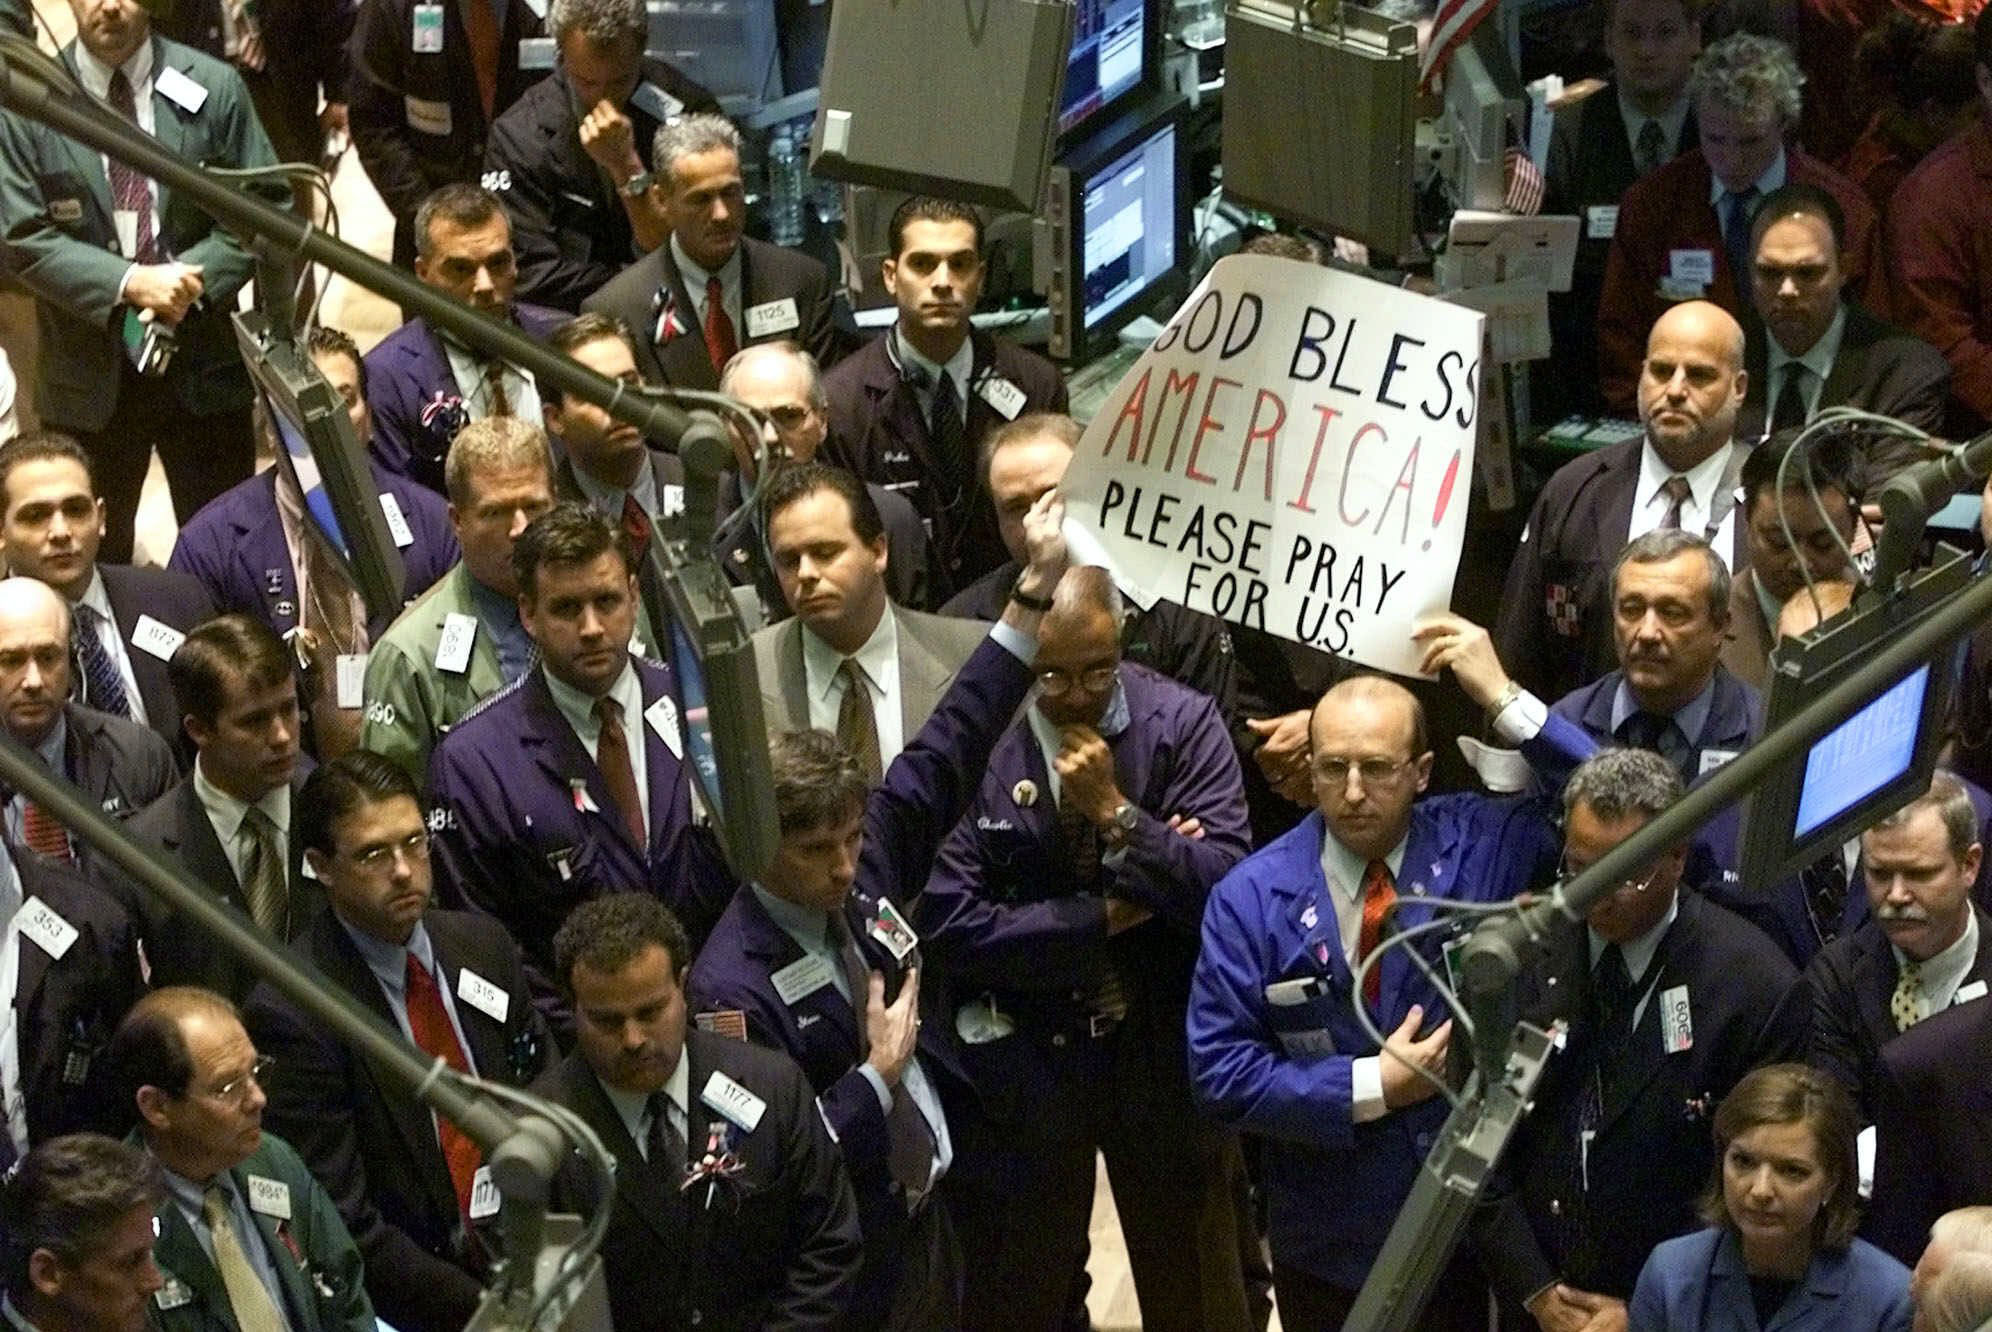 """Stock traders in New York hold a sign saying, """"God Bless America"""" after the attacks of 9/11."""